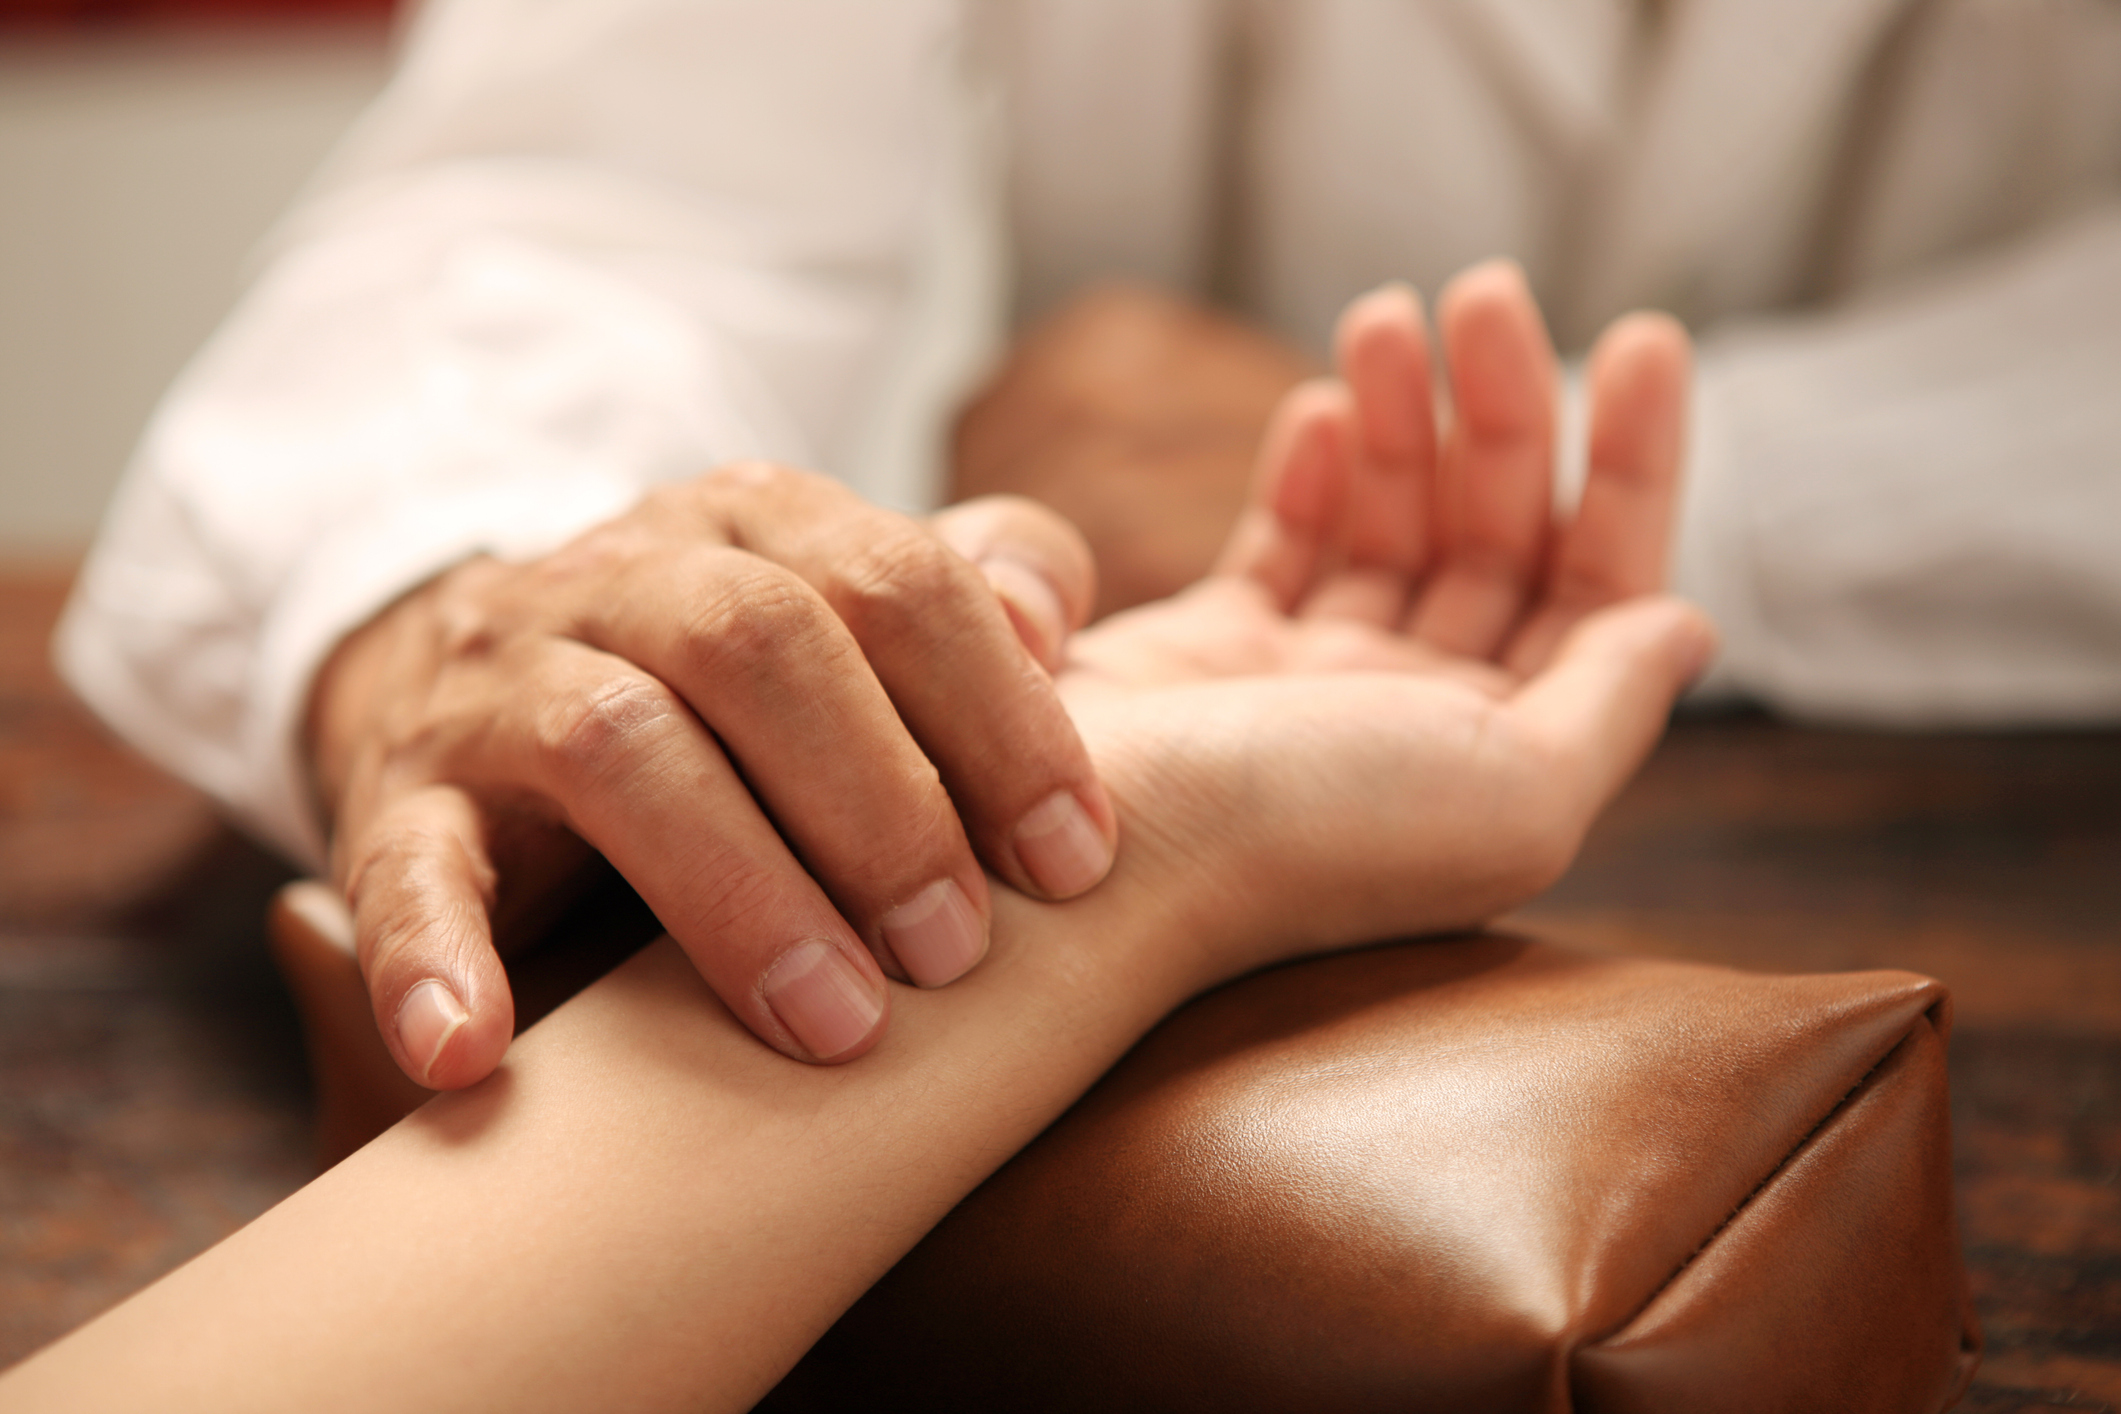 Pulse diagnosis is an integral component of Chinese medicinal practice